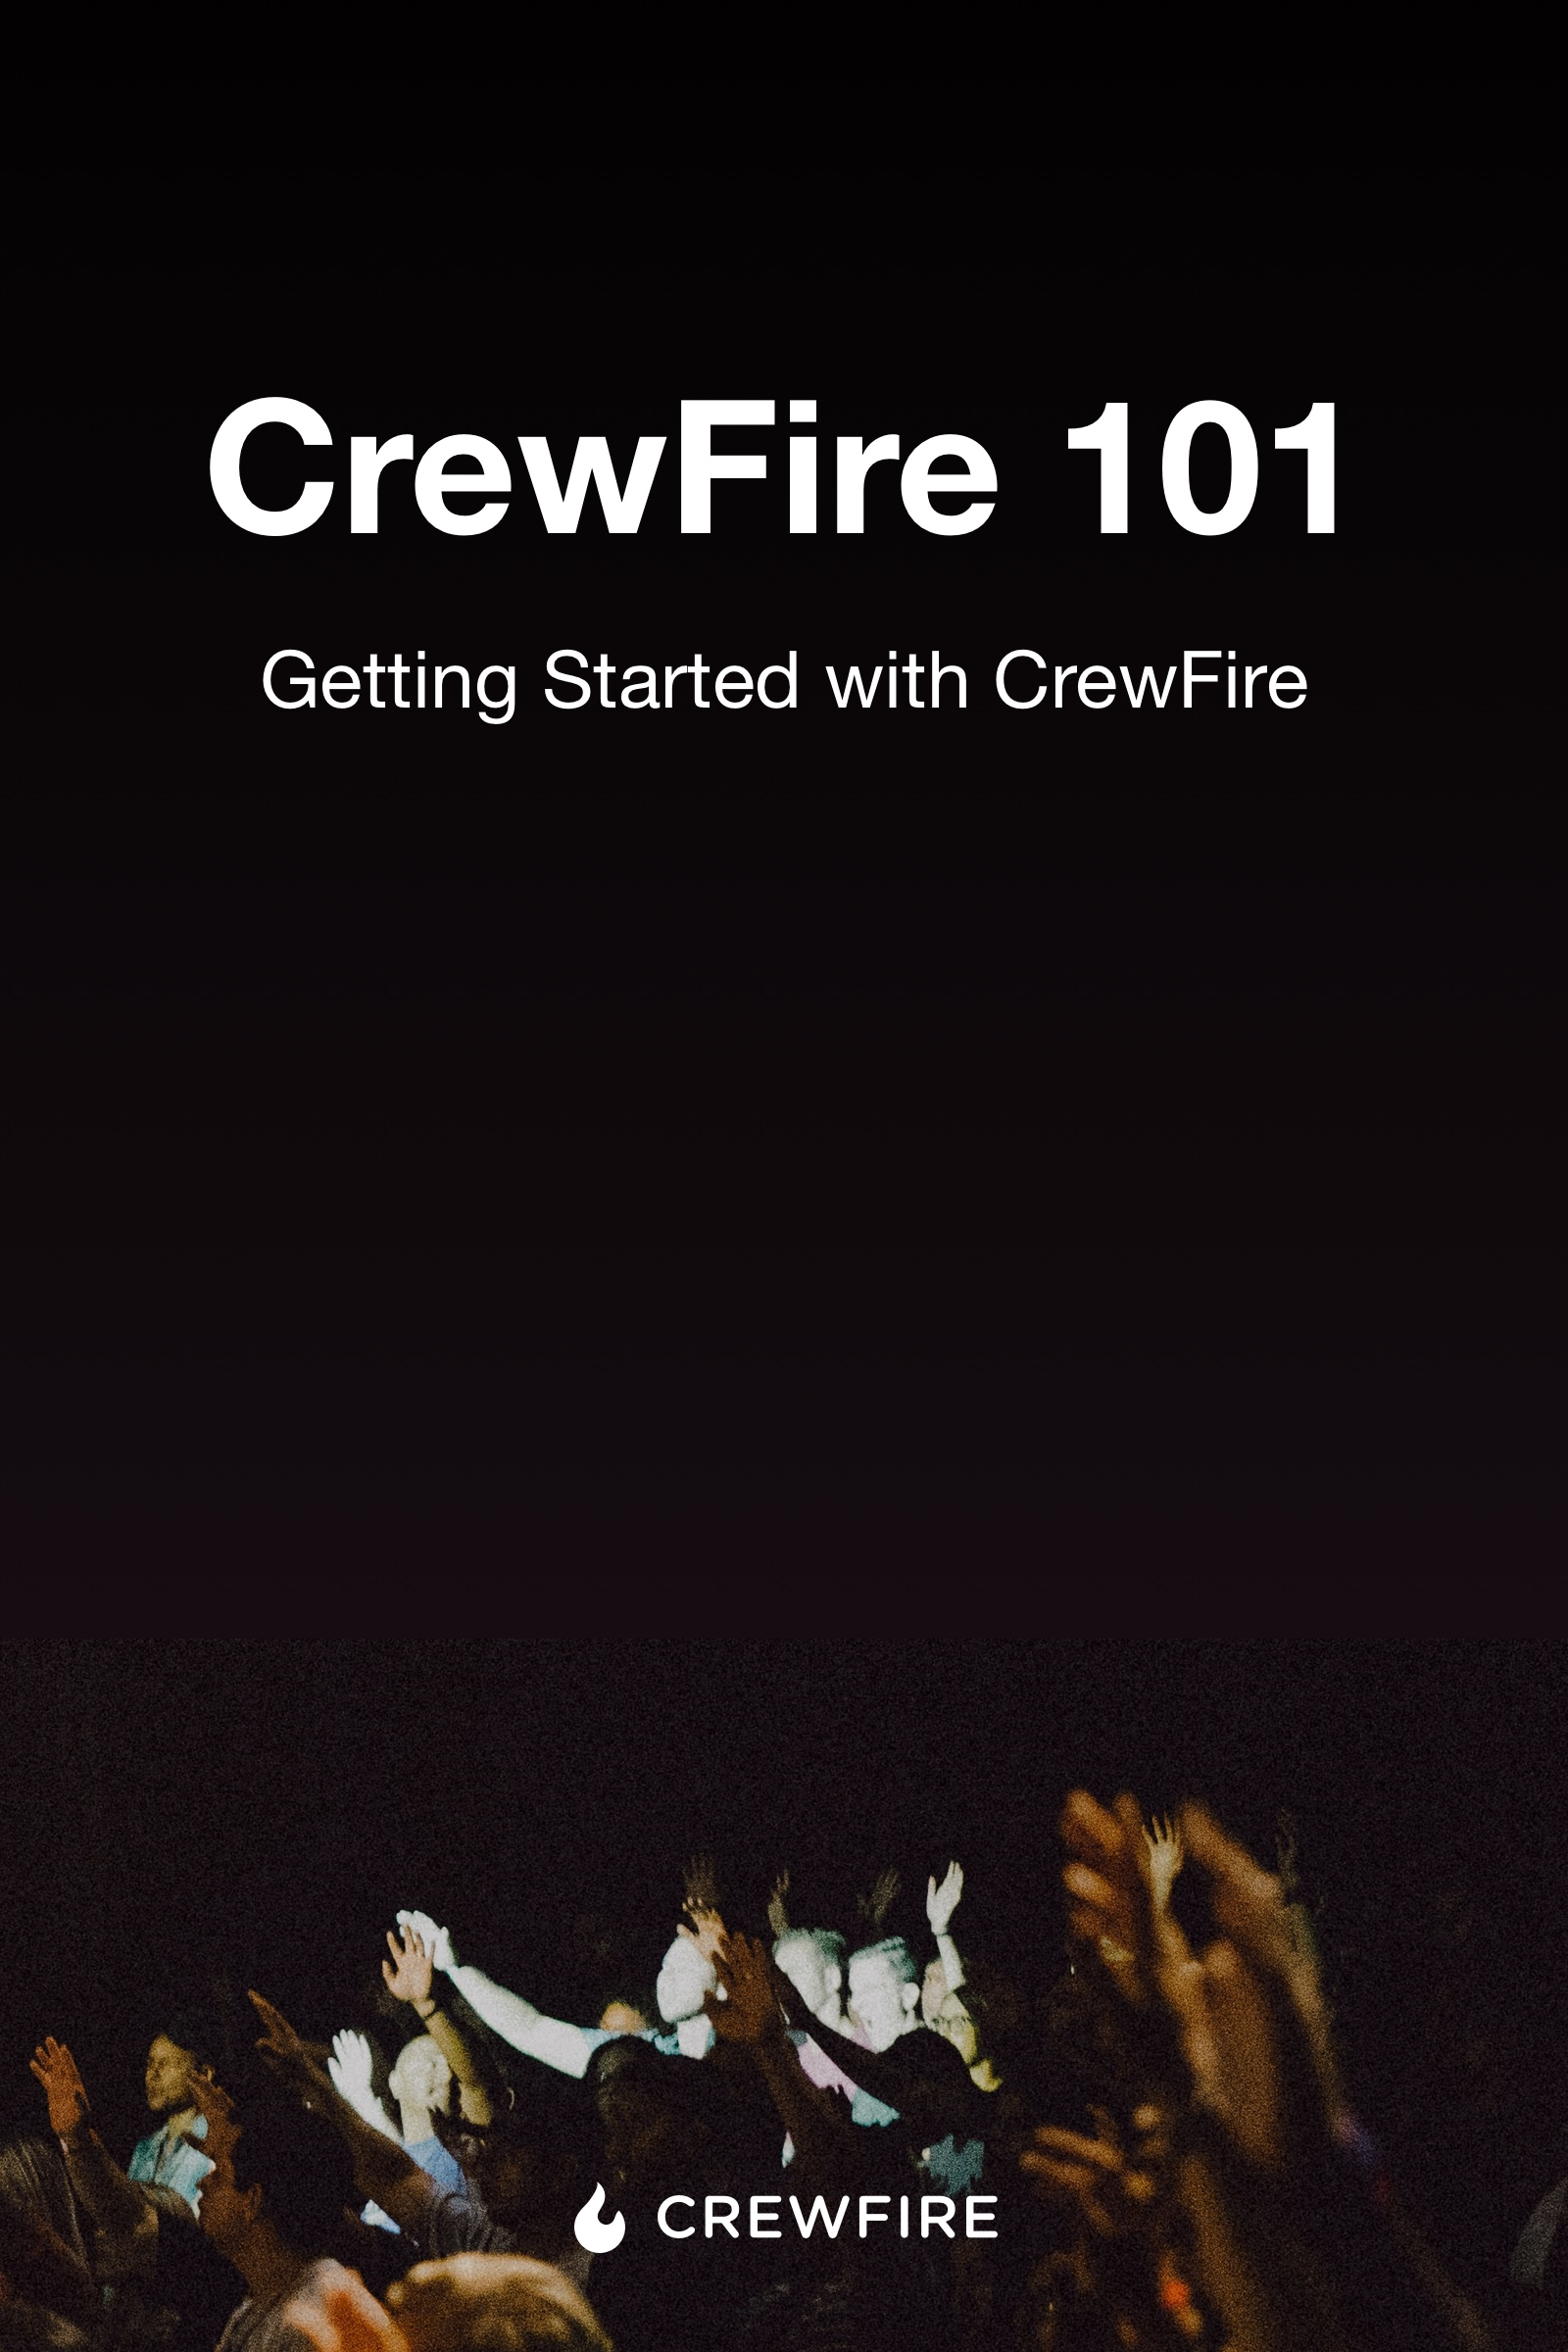 CrewFire 101 - Getting Started with CrewFire